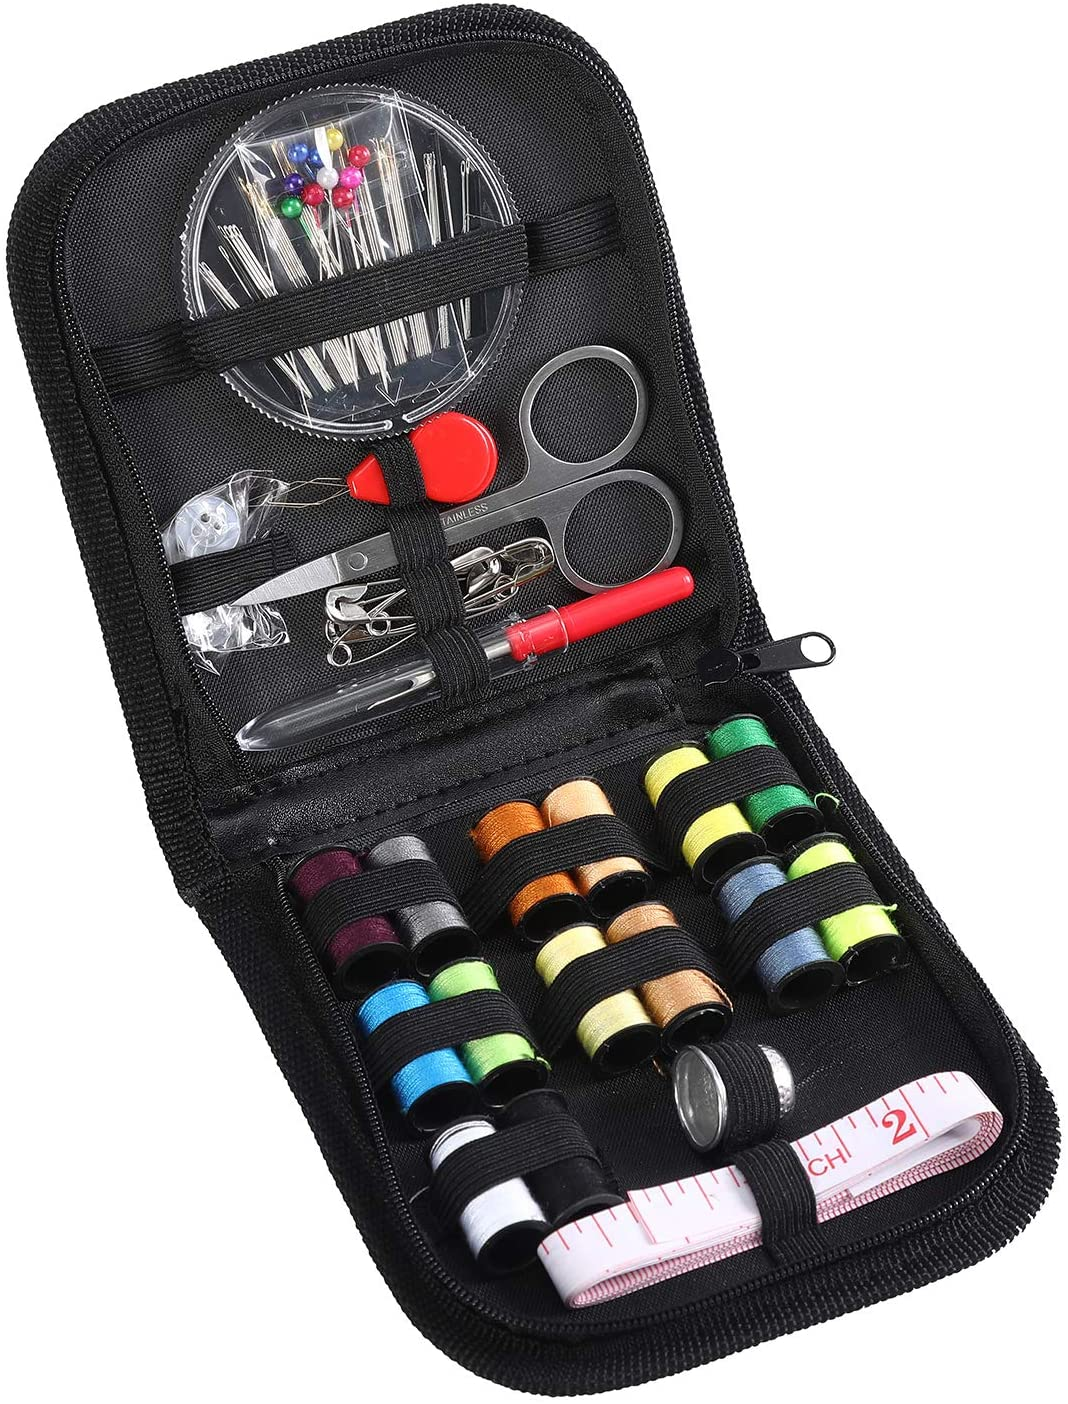 Portable Sewing Kits Accessories Supplies - Premium Sew Kit Emergency Set with Zipper Carrying Case for Traveller and Beginners Erikord(68 Pieces)